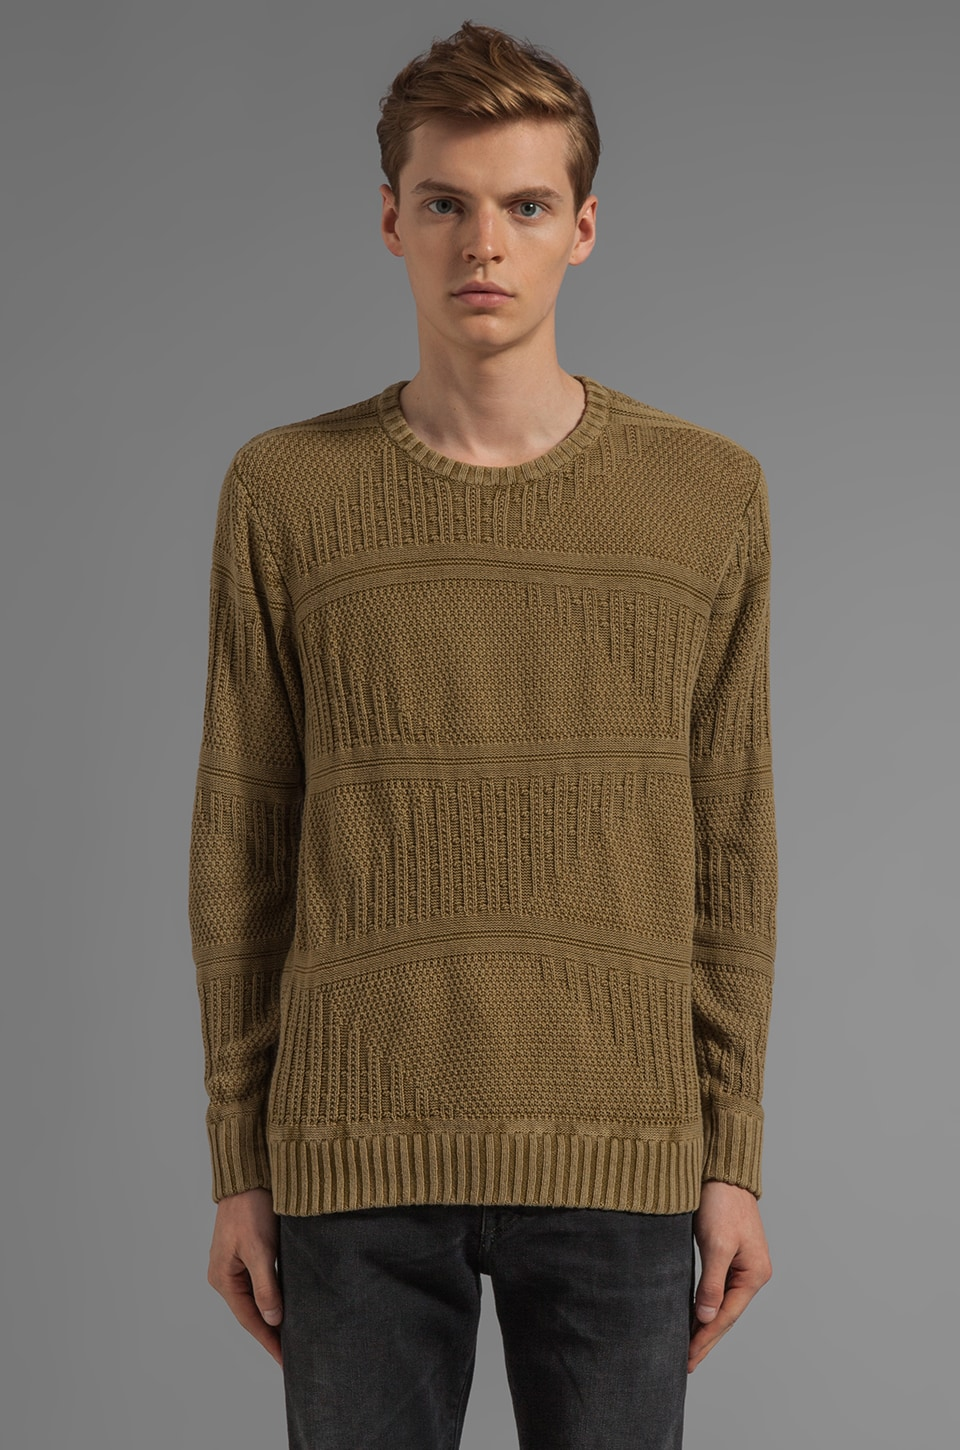 RVCA X Alex Knost Signature Collection Boutique Sweater in Avocado